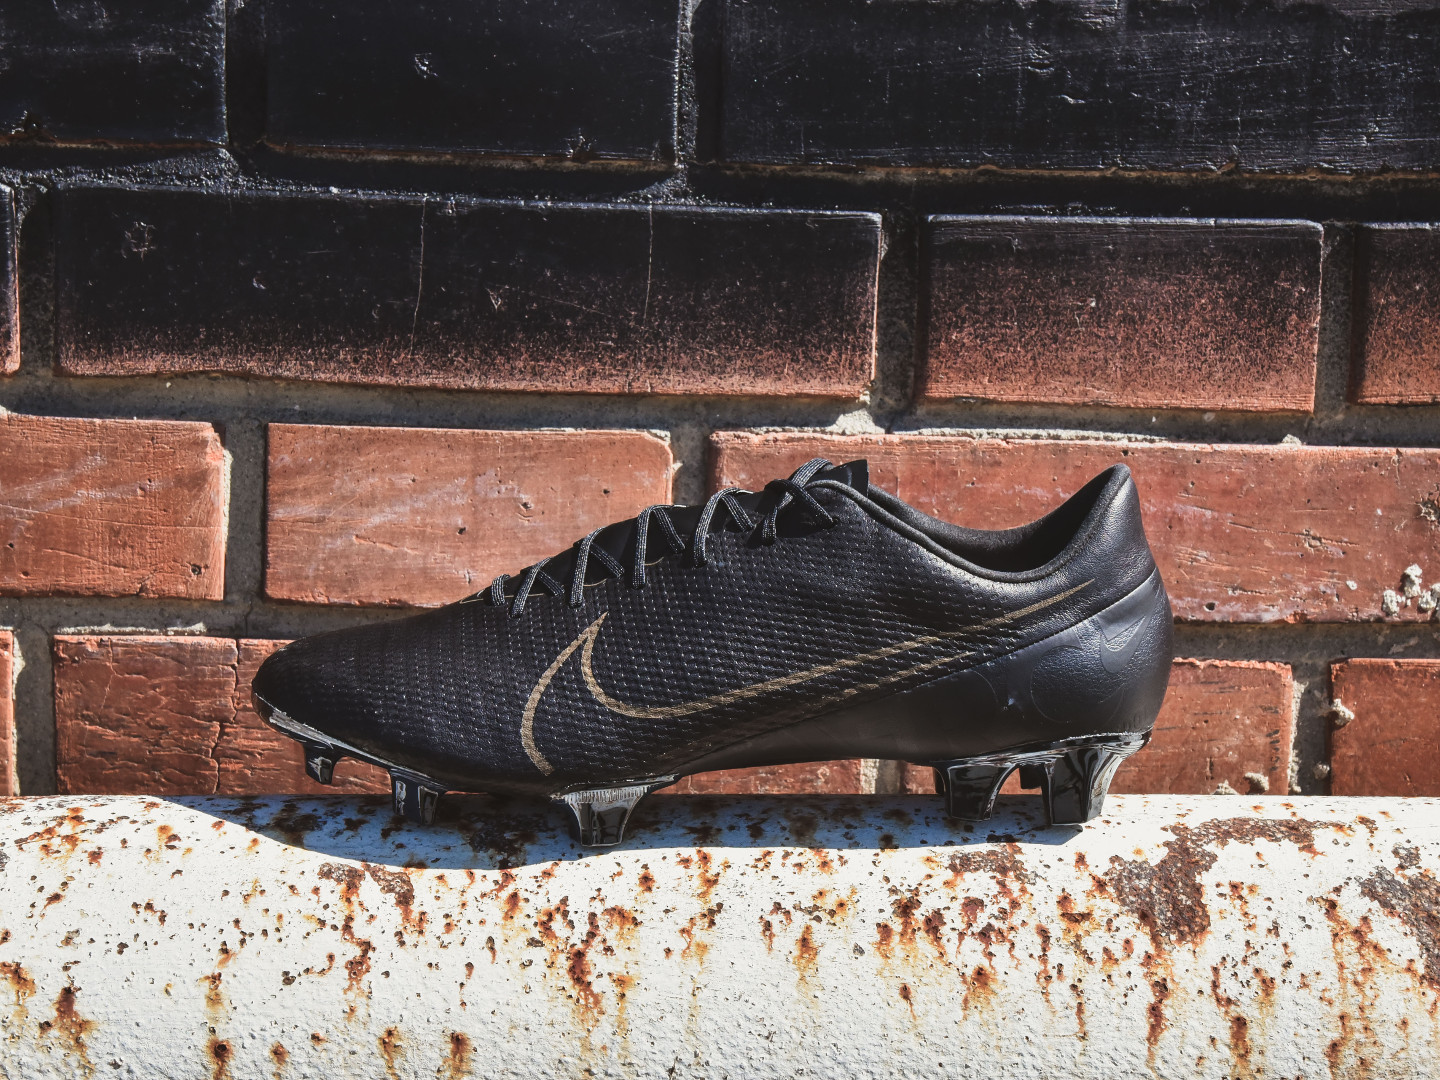 Nike Mercurial Vapor XIII Tech Craft